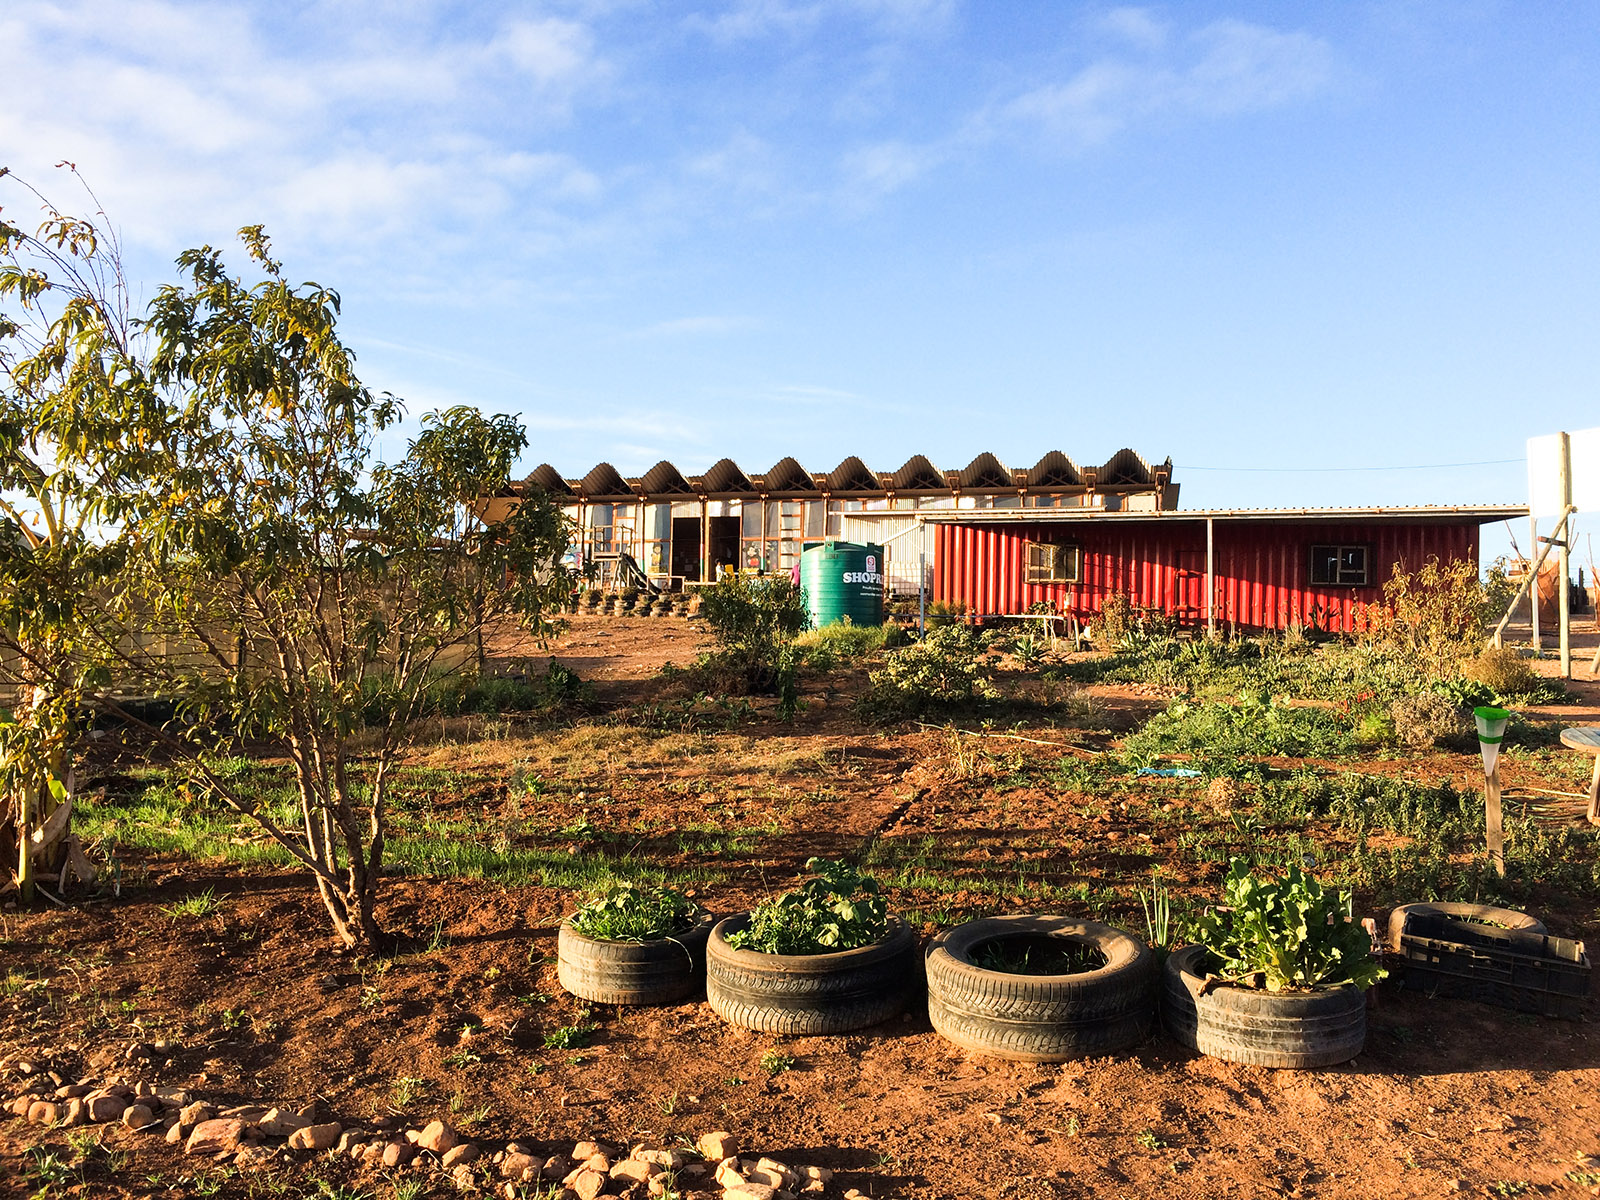 A low building with a wavy corrugated steel roof stands at a distance with a tree and rubber tyres filled with plants in the foreground